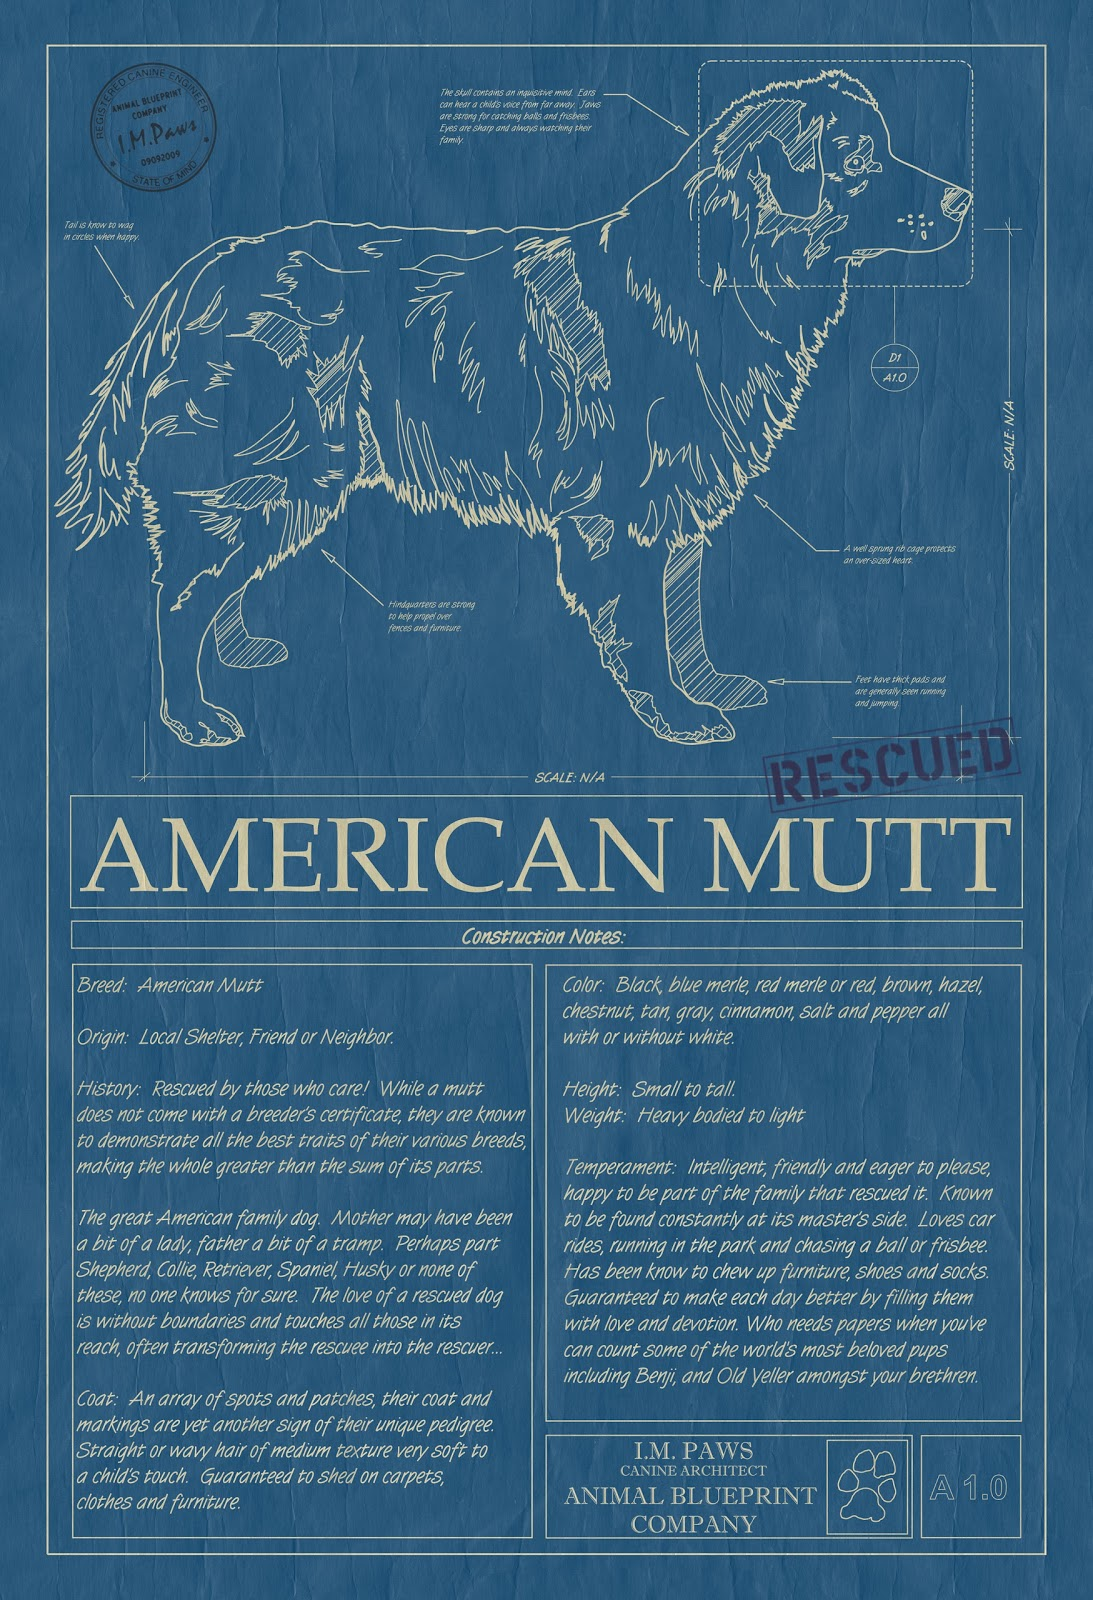 To you animal blueprint company adds rescued mutts cats art animal blueprint company adds rescued mutts cats art malvernweather Image collections